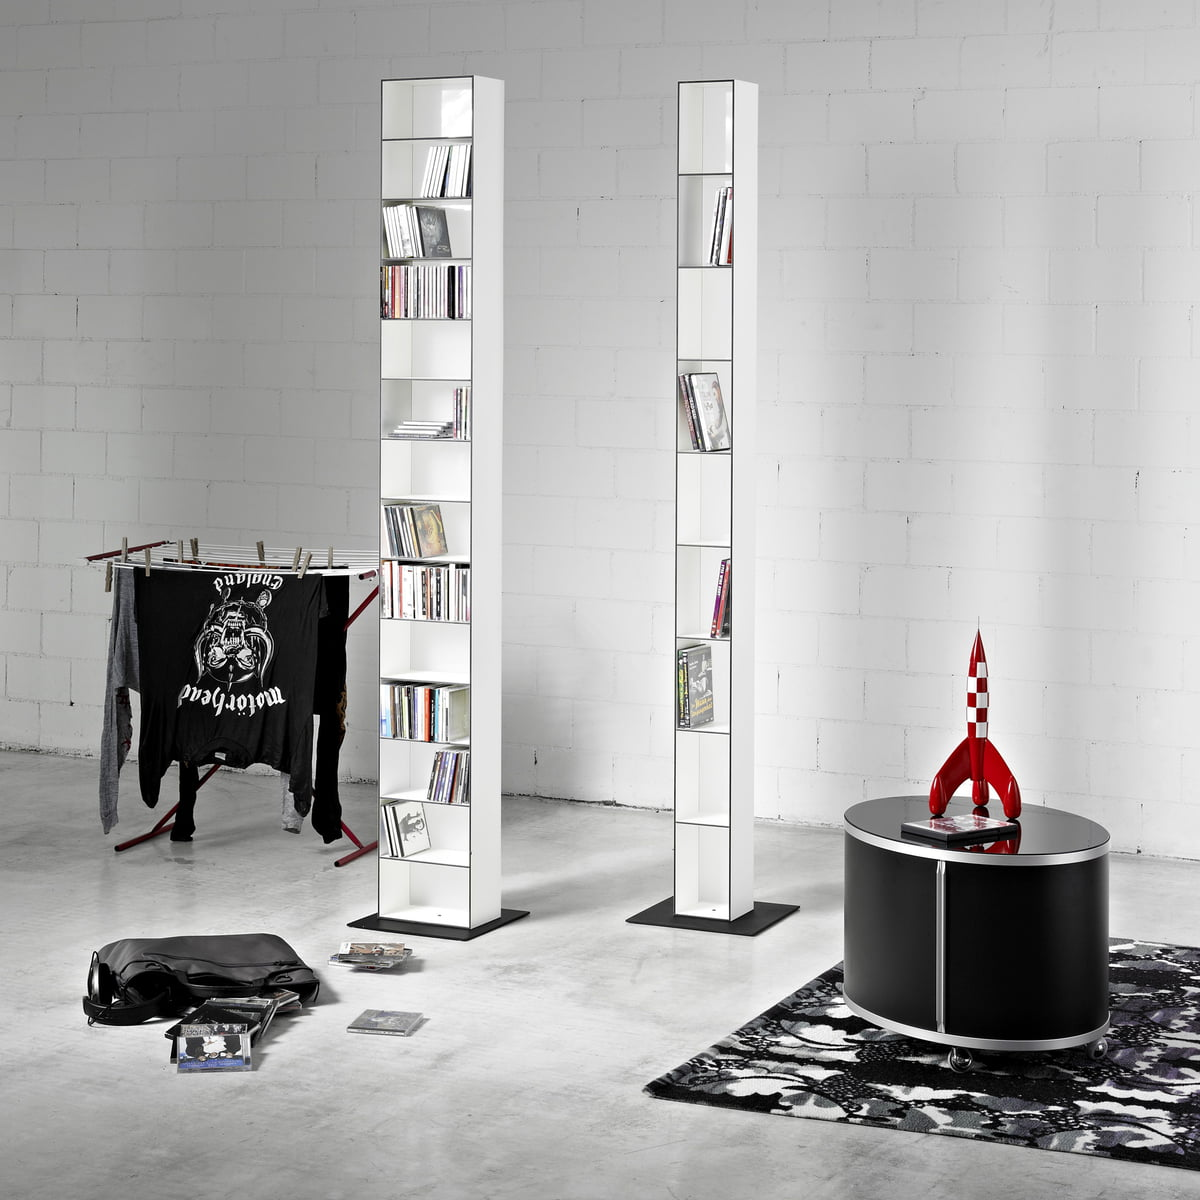 wogg 25 cd shelf in the shop. Black Bedroom Furniture Sets. Home Design Ideas